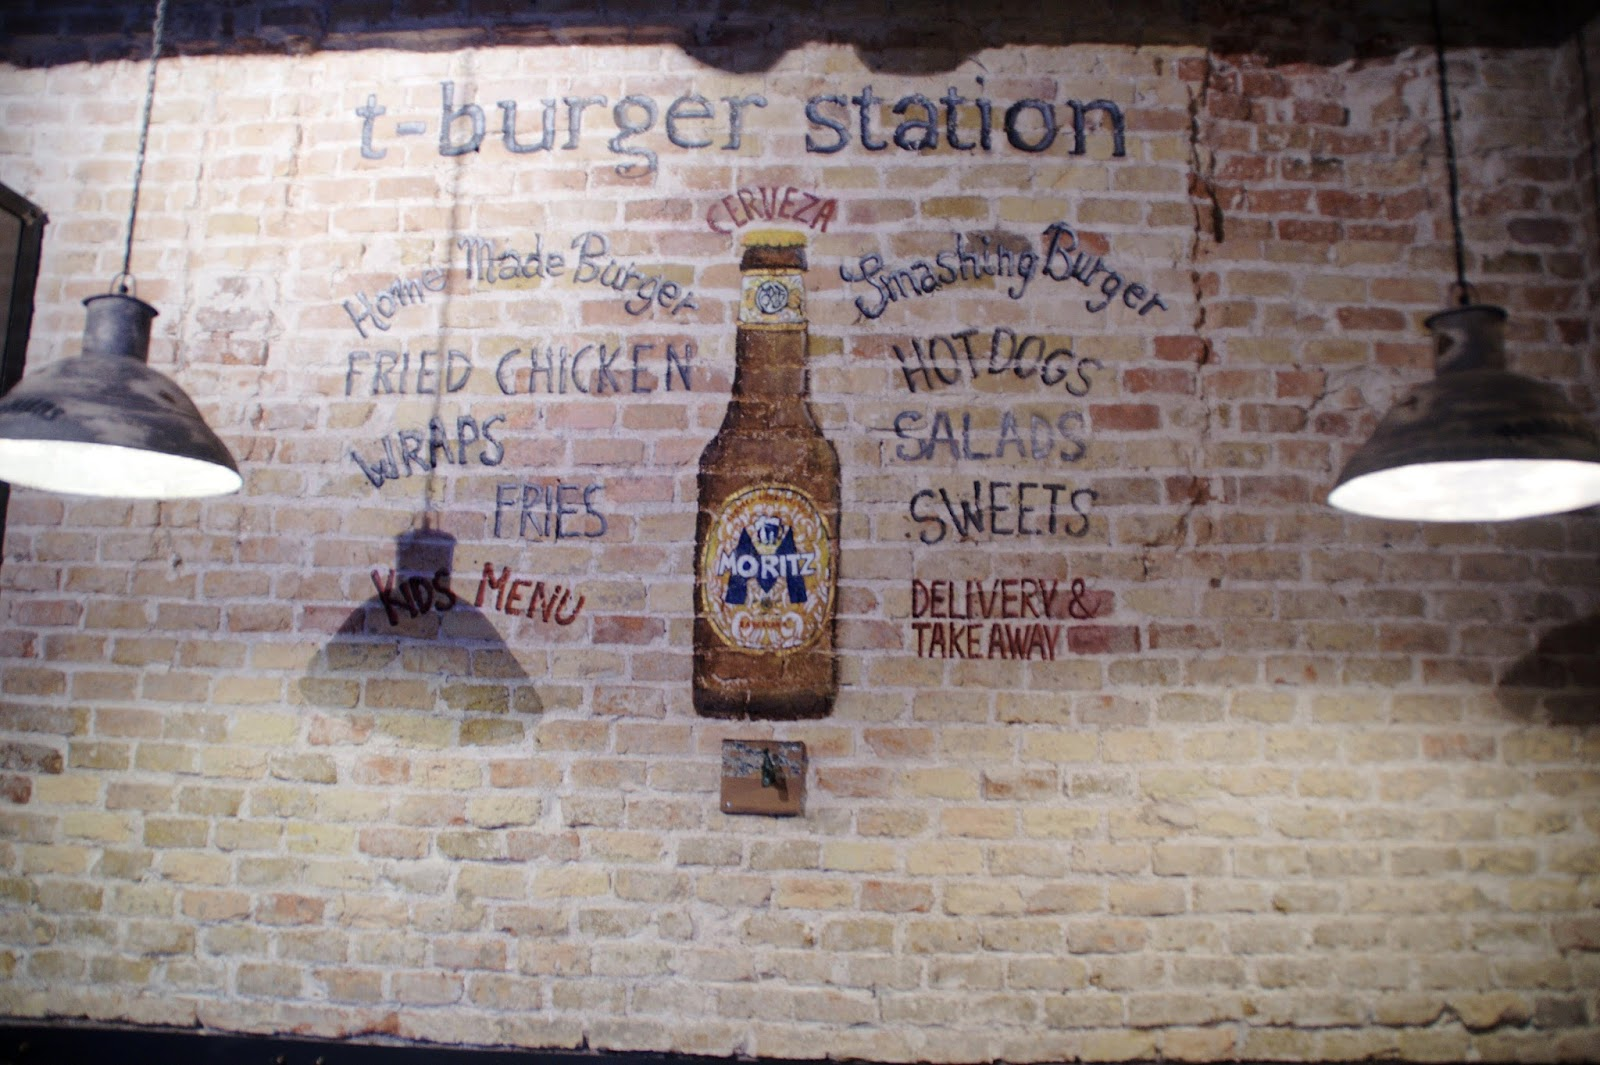 T-Burger Station Barcelona